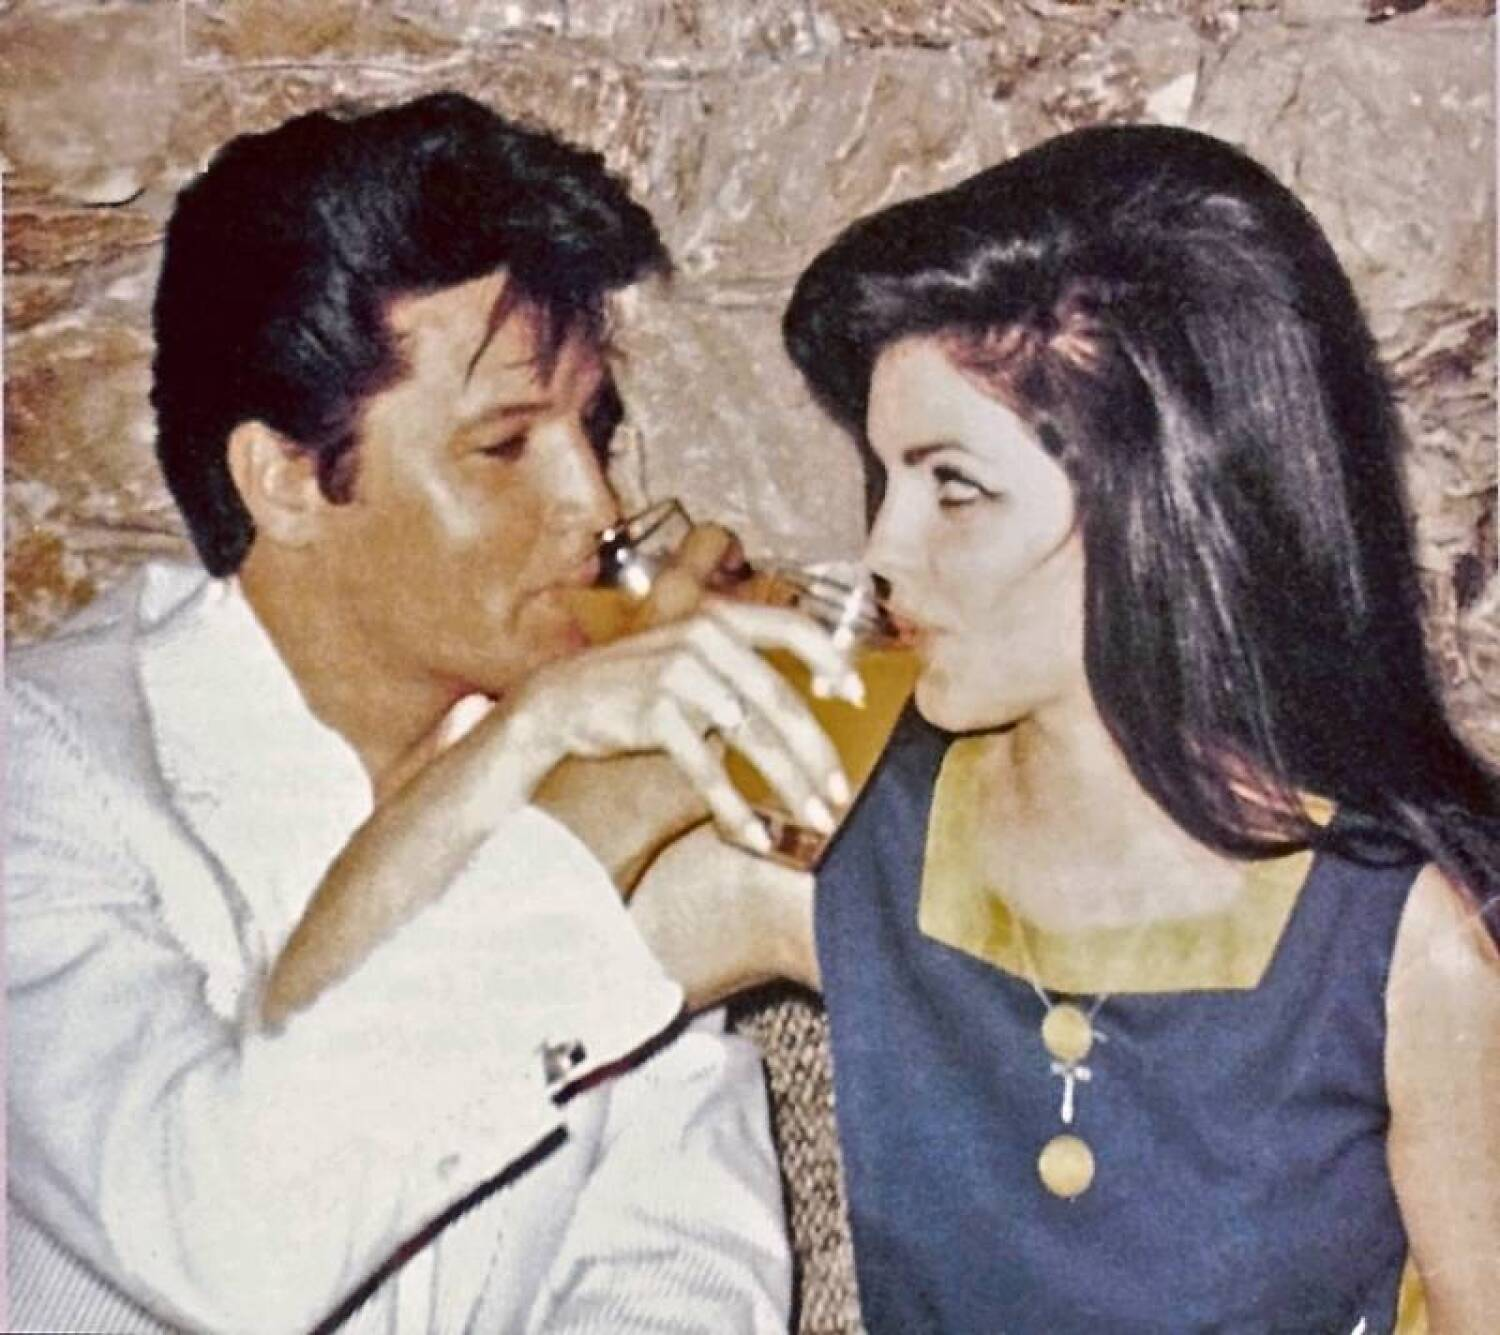 Pin Priscilla Presley Date Of Birth Image Search Results on Pinterest